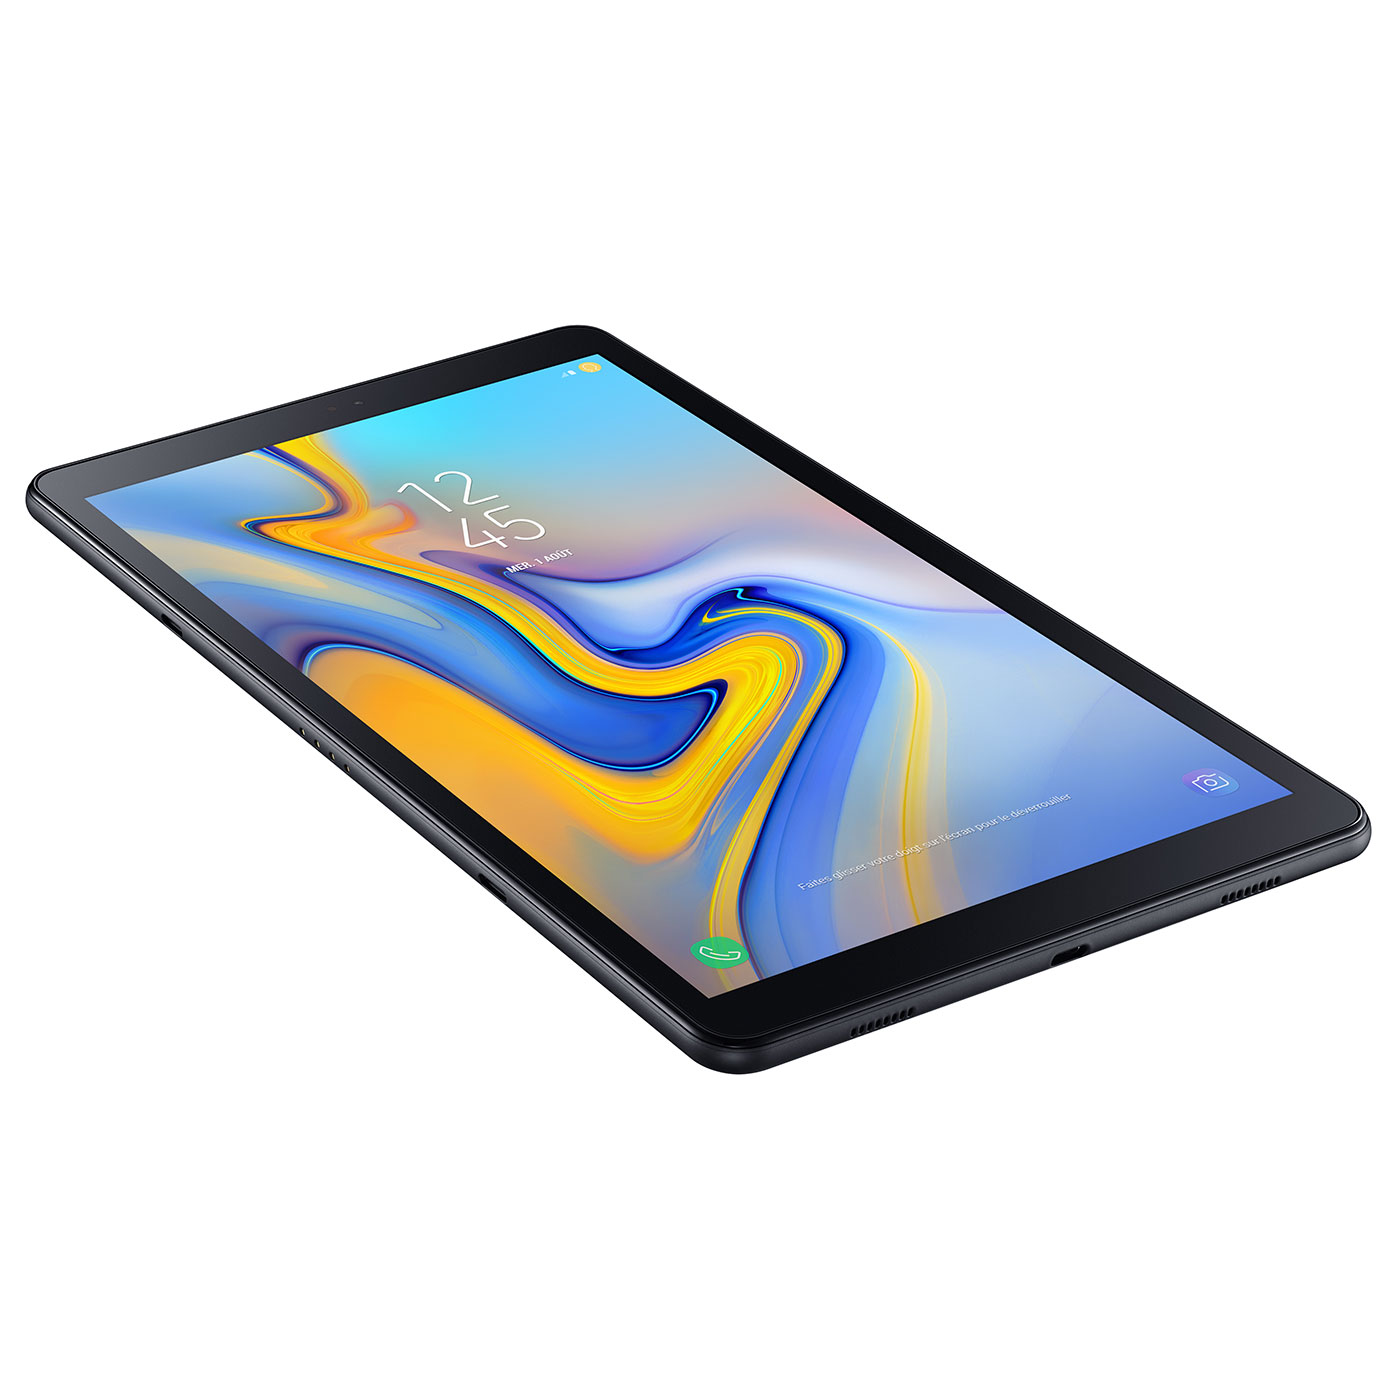 Samsung Galaxy TAB A 10.5 T595 Noire - Tablette tactile Samsung - 3